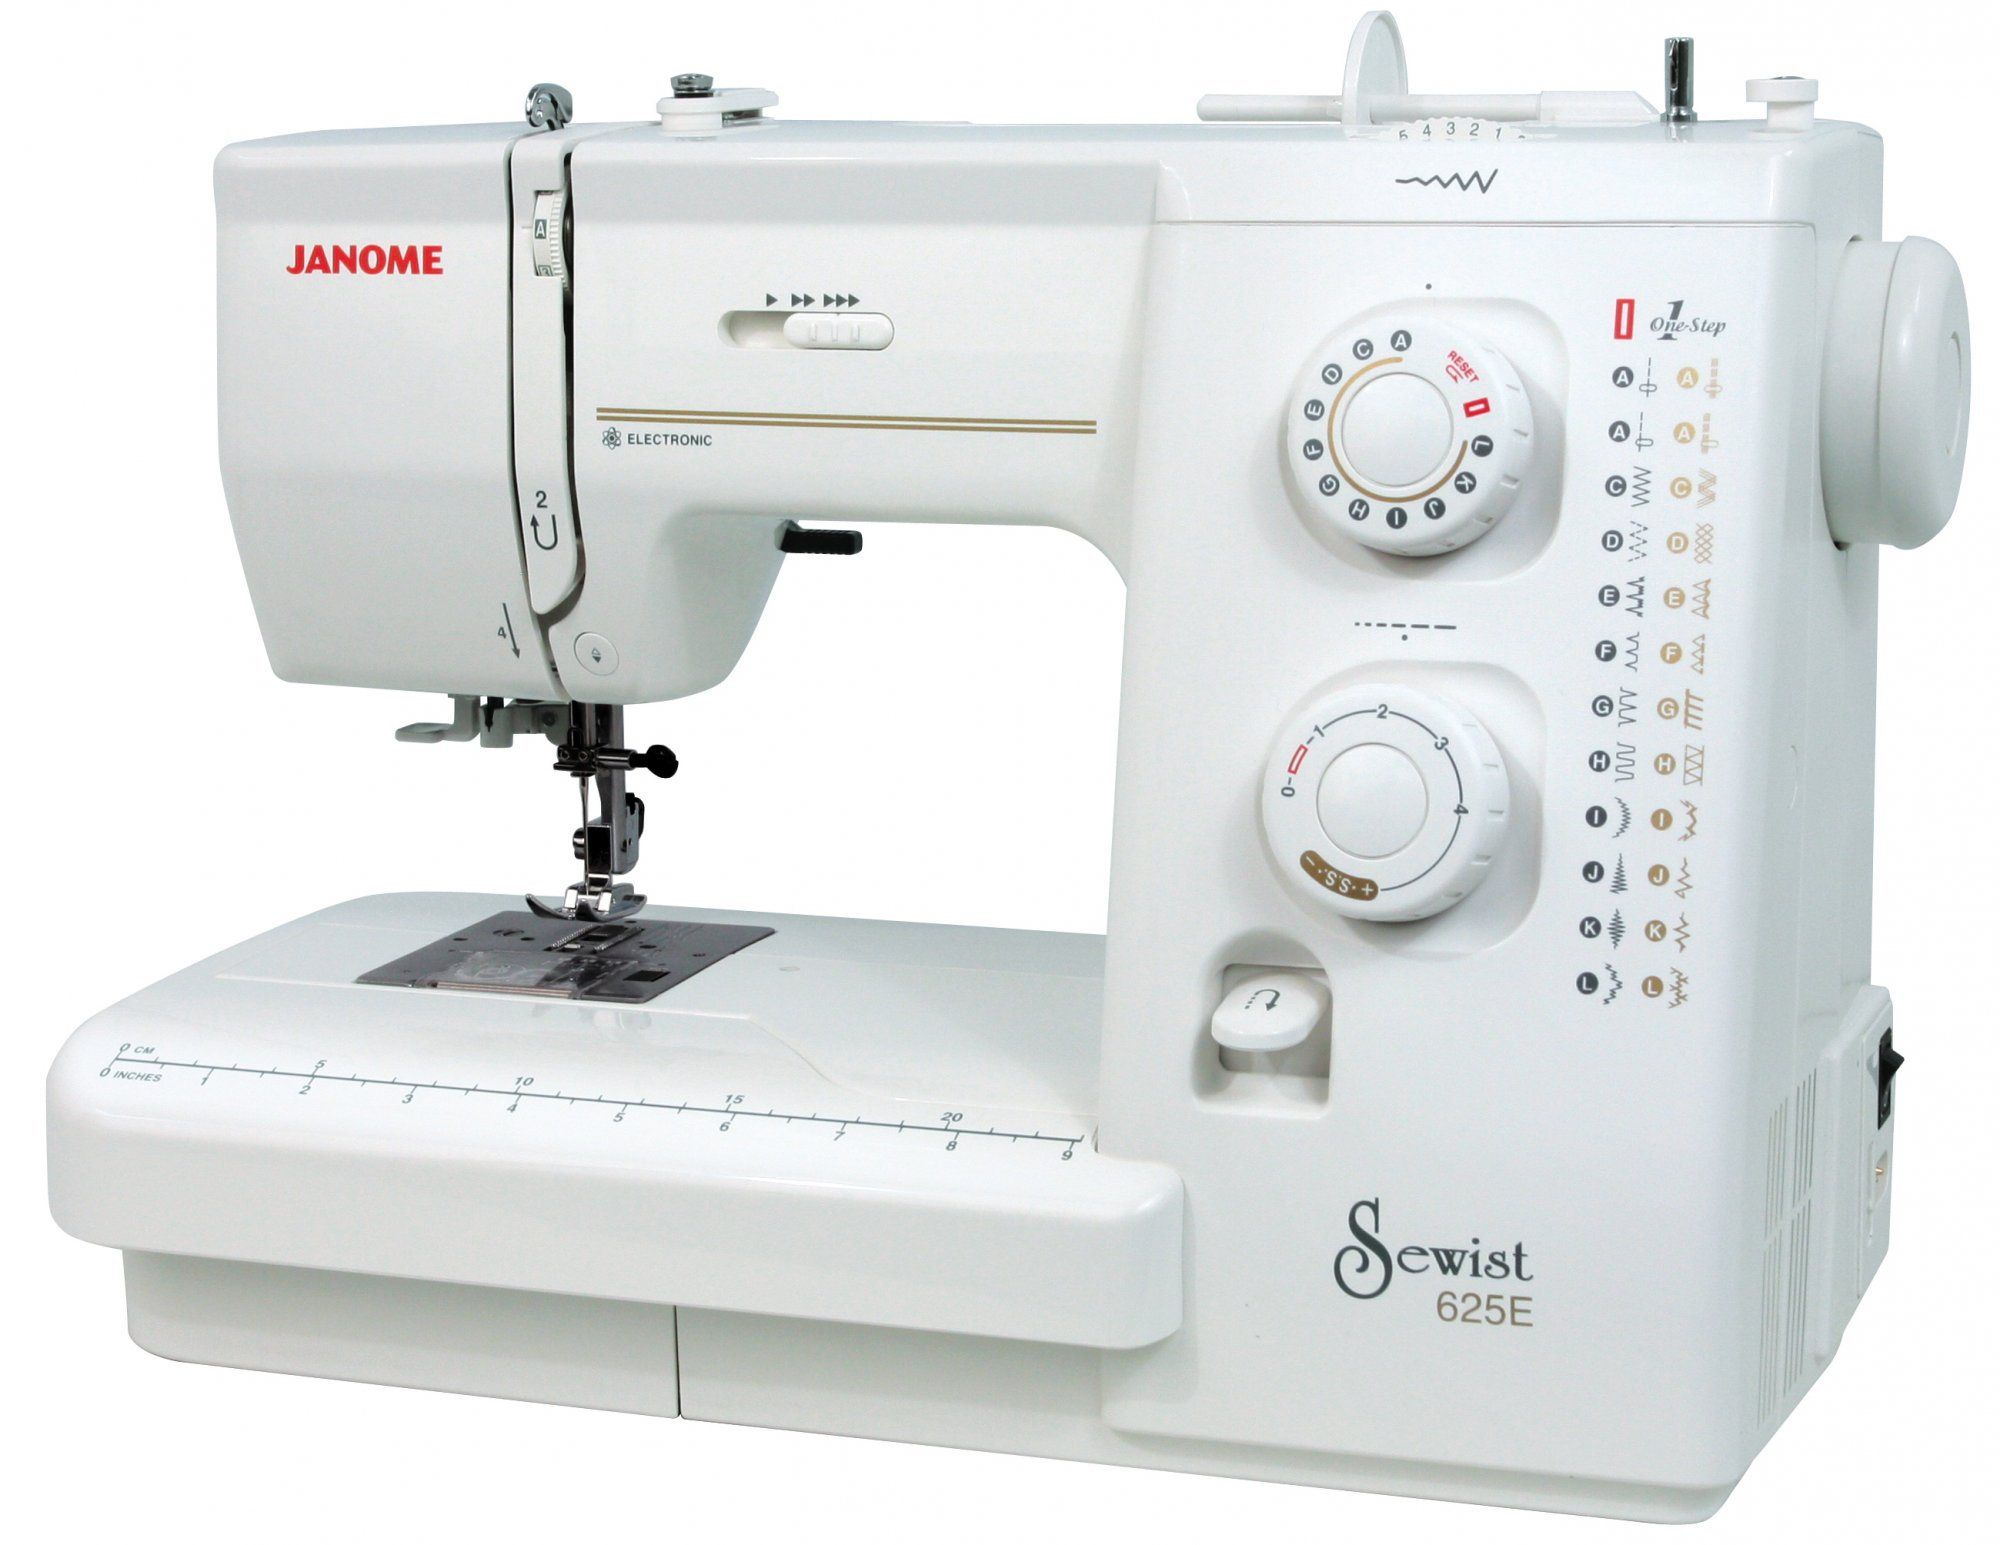 Janome 625E sewing machine